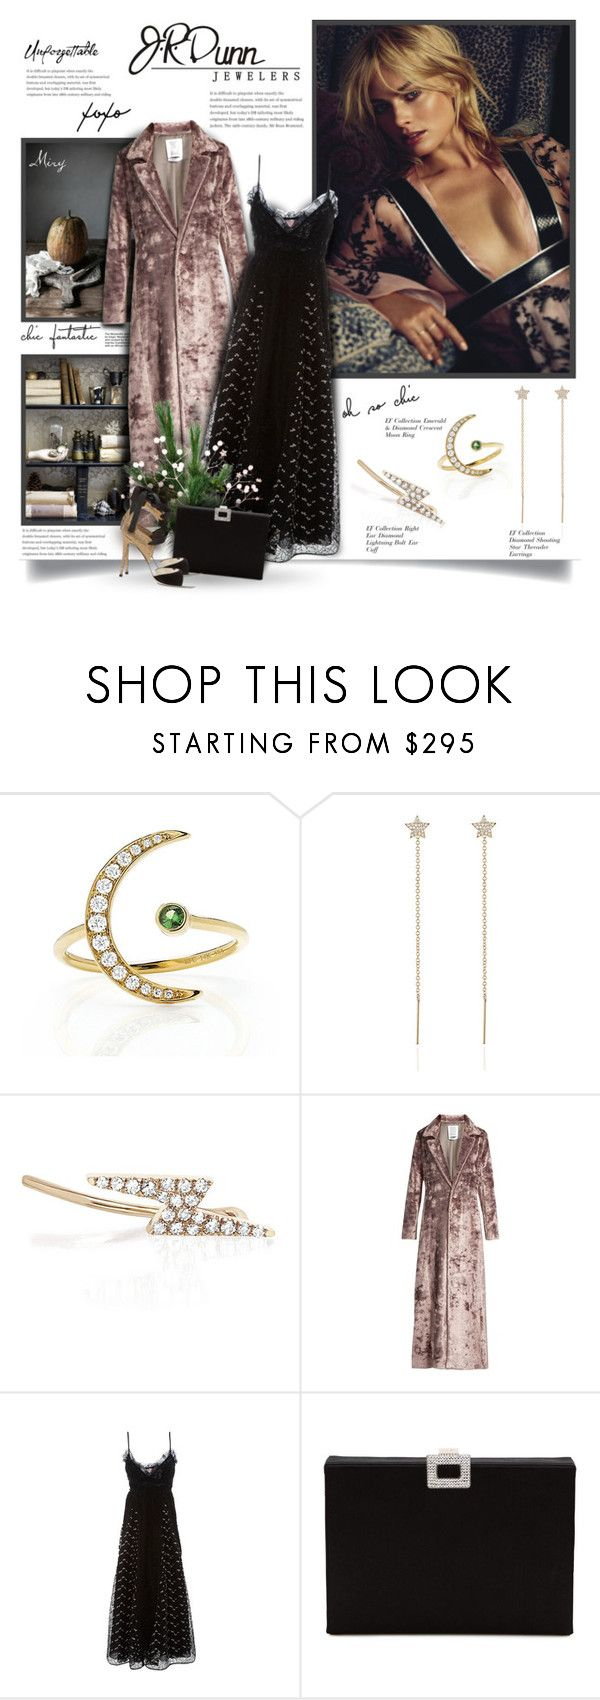 """""""Mix, Stack, Layer"""" by thewondersoffashion ❤ liked on Polyvore featuring EF Collection, Dunn, Rosie Assoulin, Giamba, Roger Vivier and René Caovilla"""